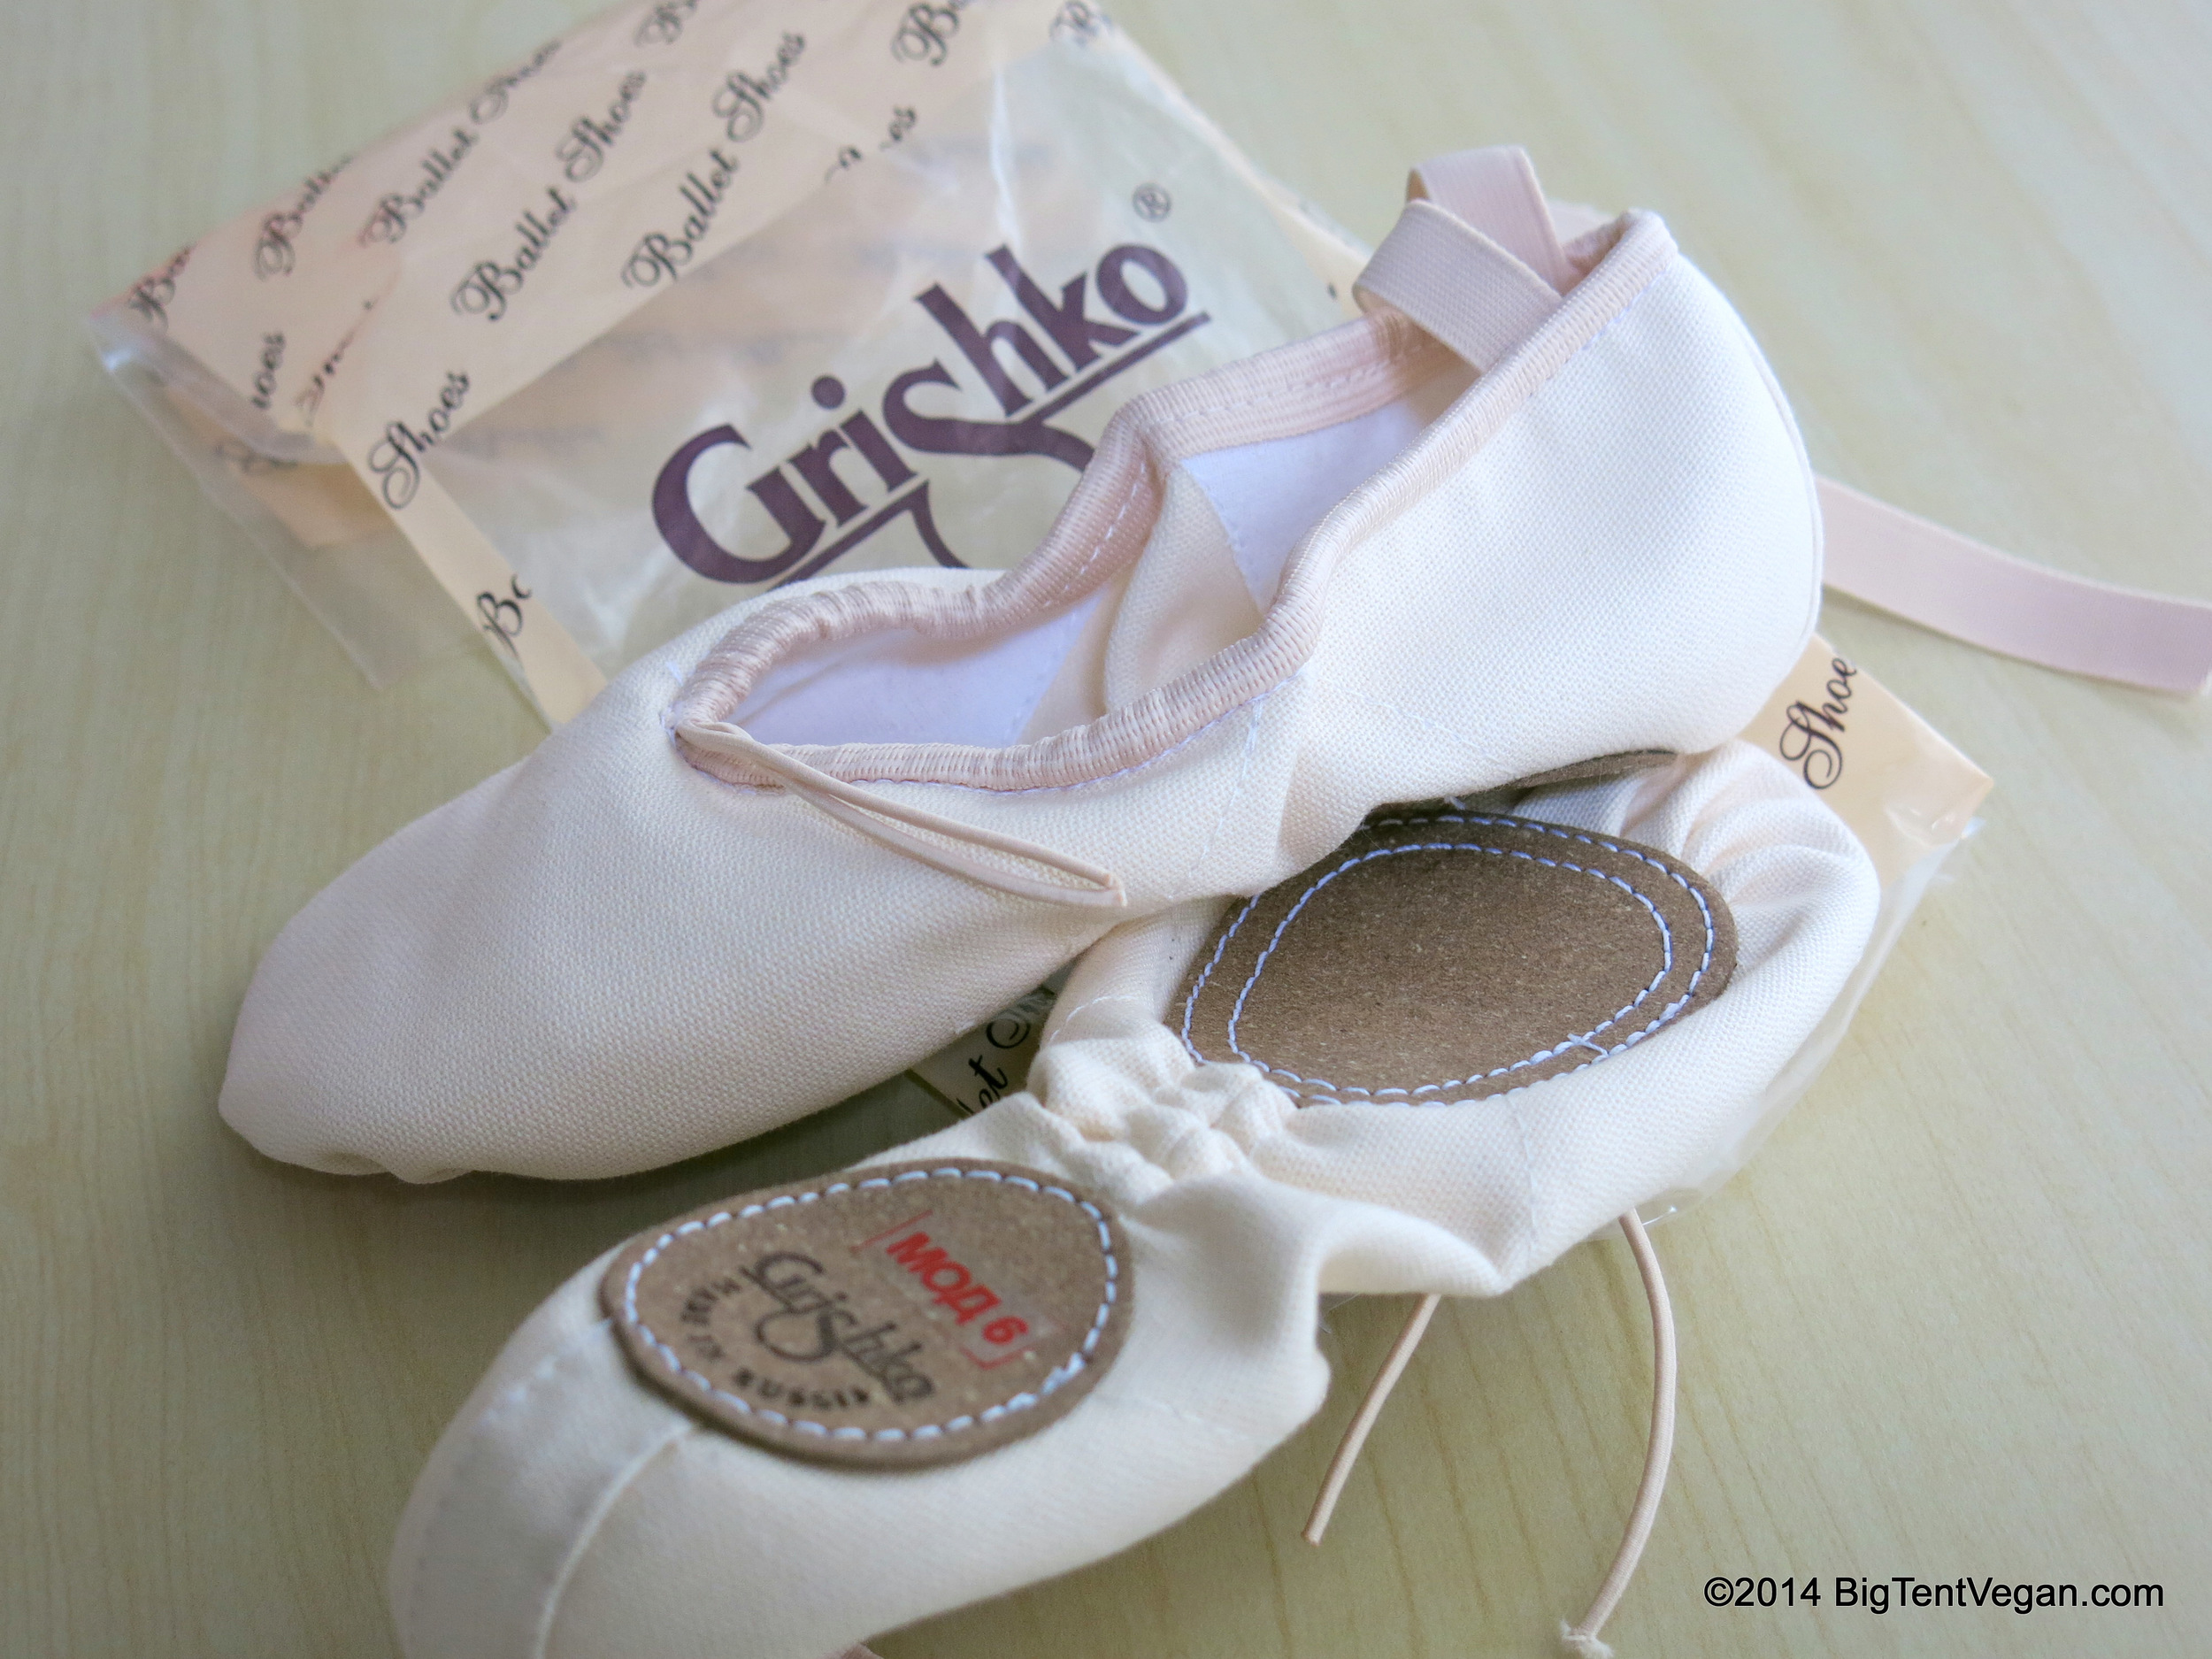 Vegan Grishko Ballet Slippers, made at the Grishko facility in Moscow, Russia, and ordered through Discount Dance Supply in Mission Viejo, CA, USA.